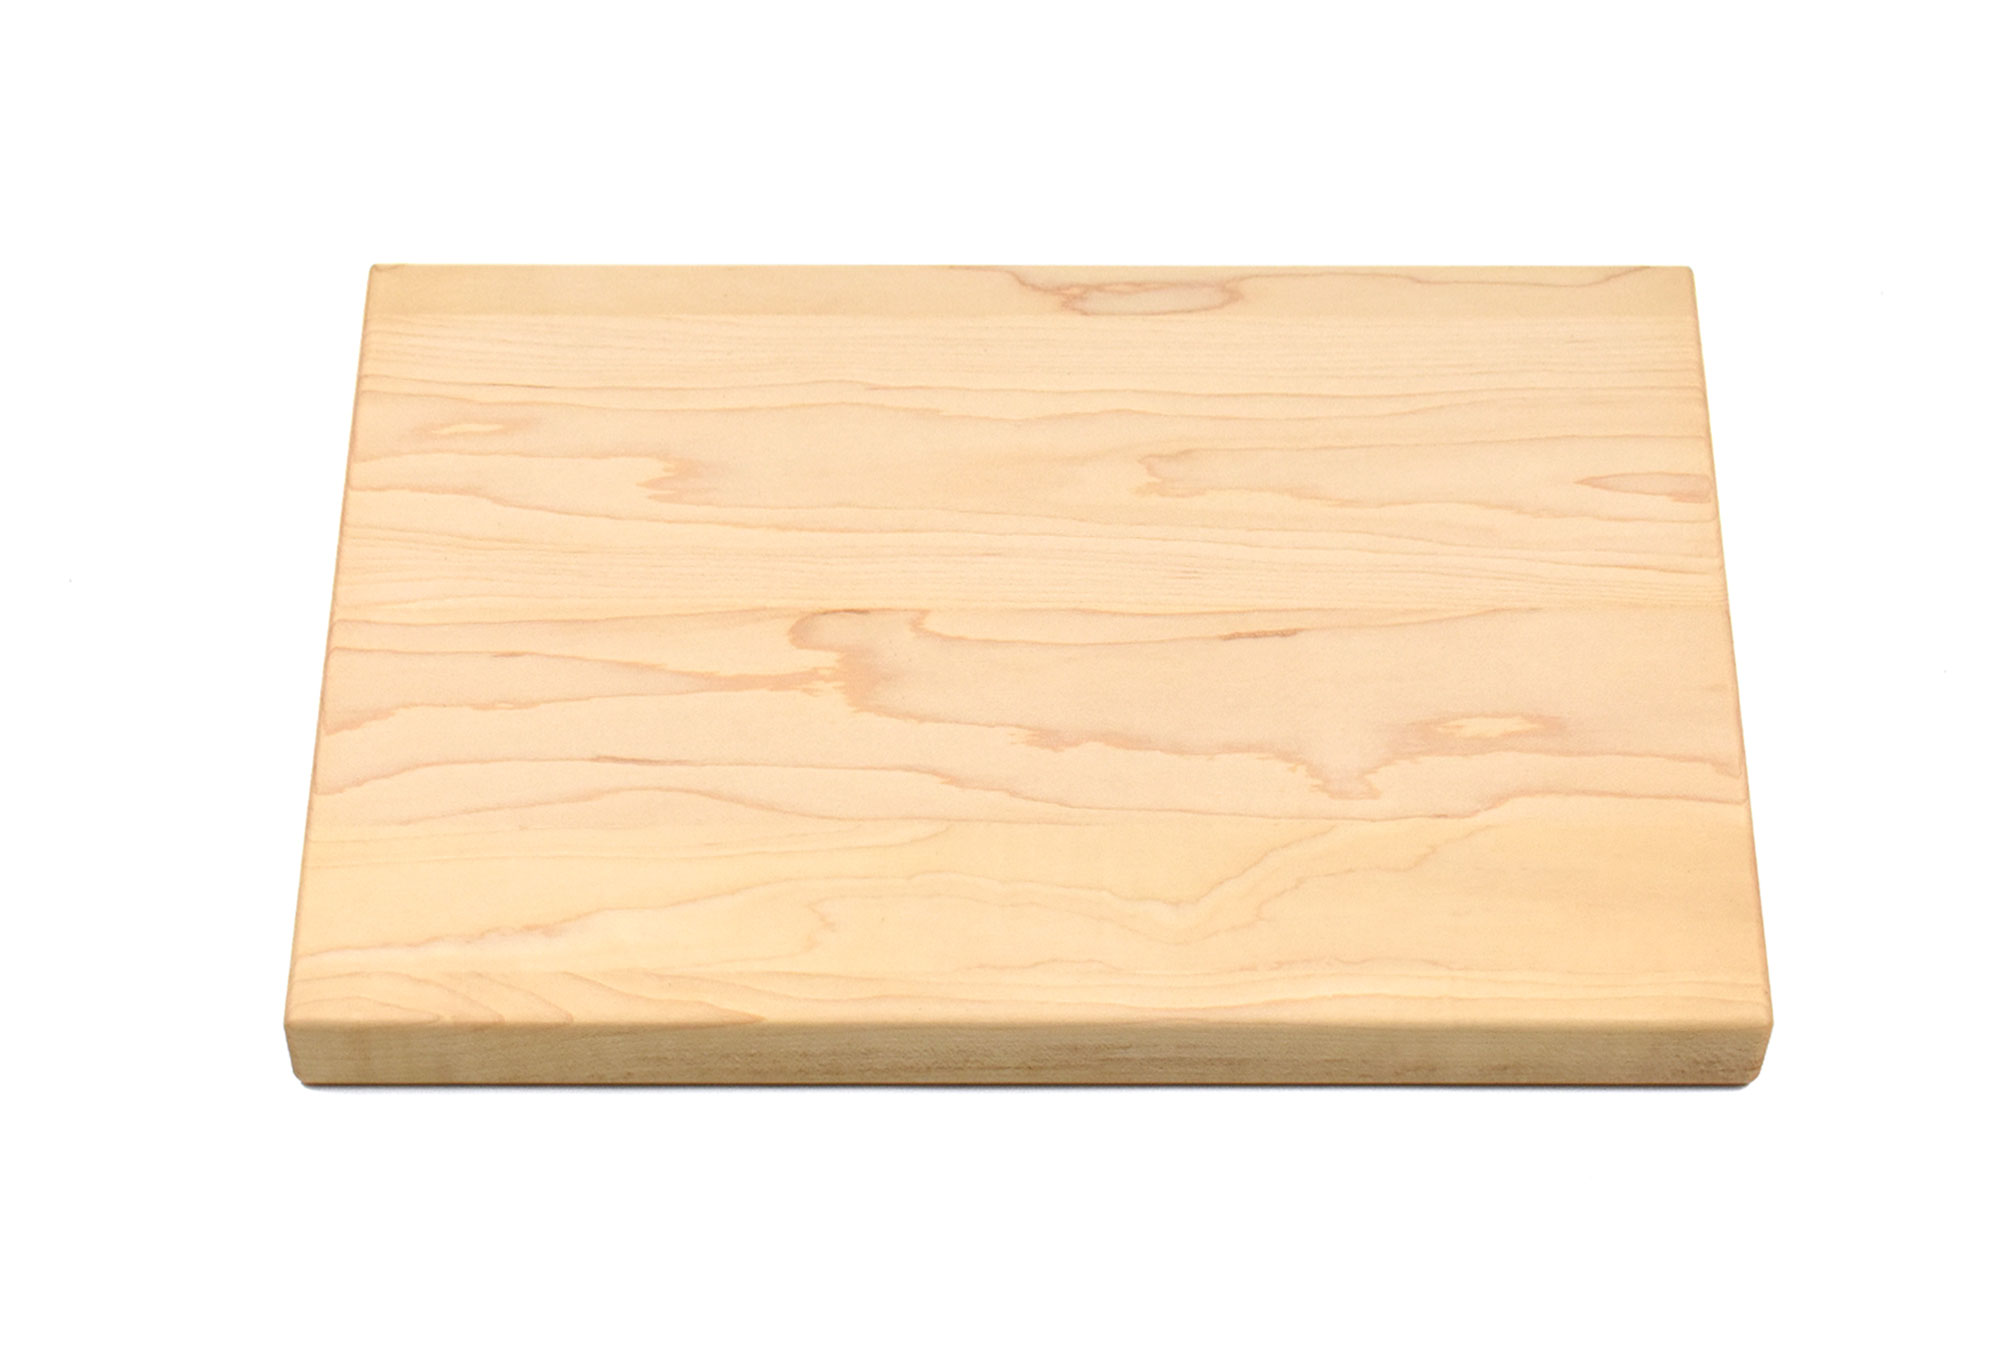 Nice wood cutting board rounded corners and edges